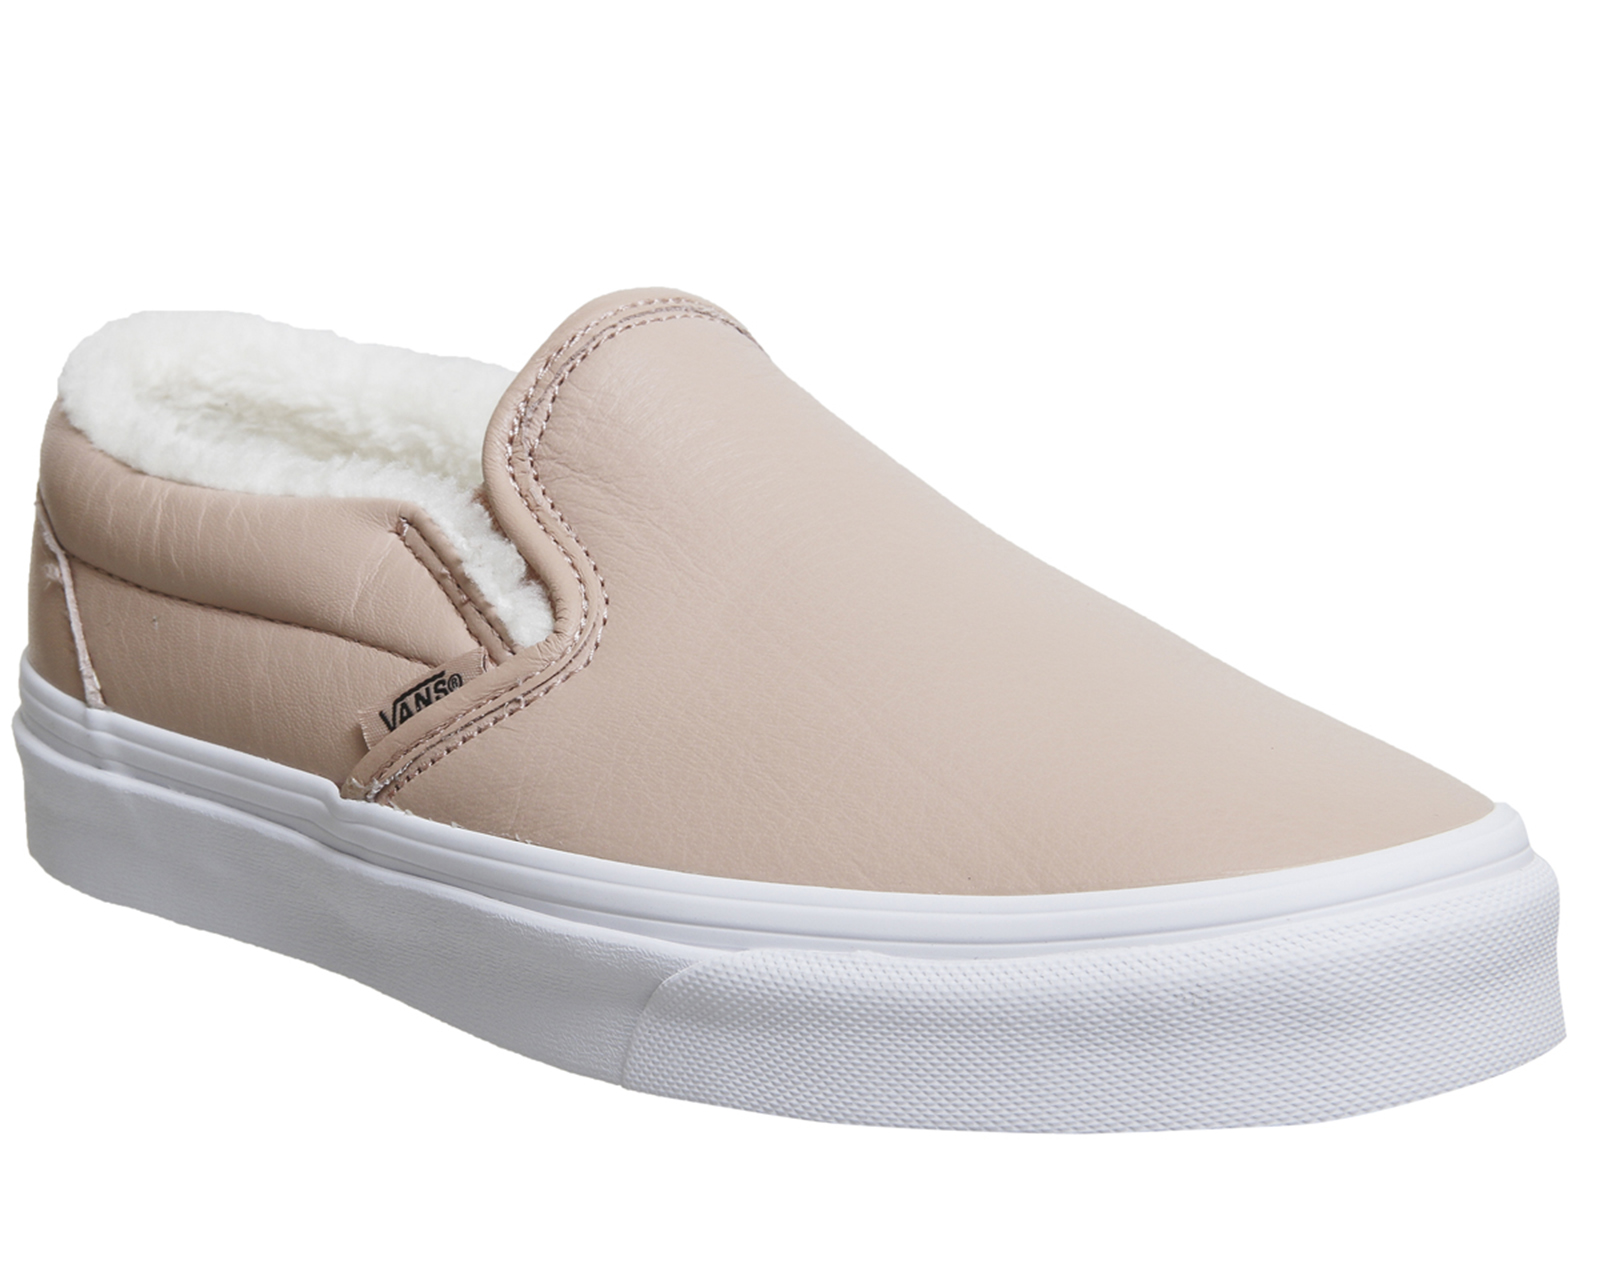 Details about Womens Vans Vans Classic Slip On MAHOGANY ROSE TRUE WHITE  SHEARLING Trainers Sho